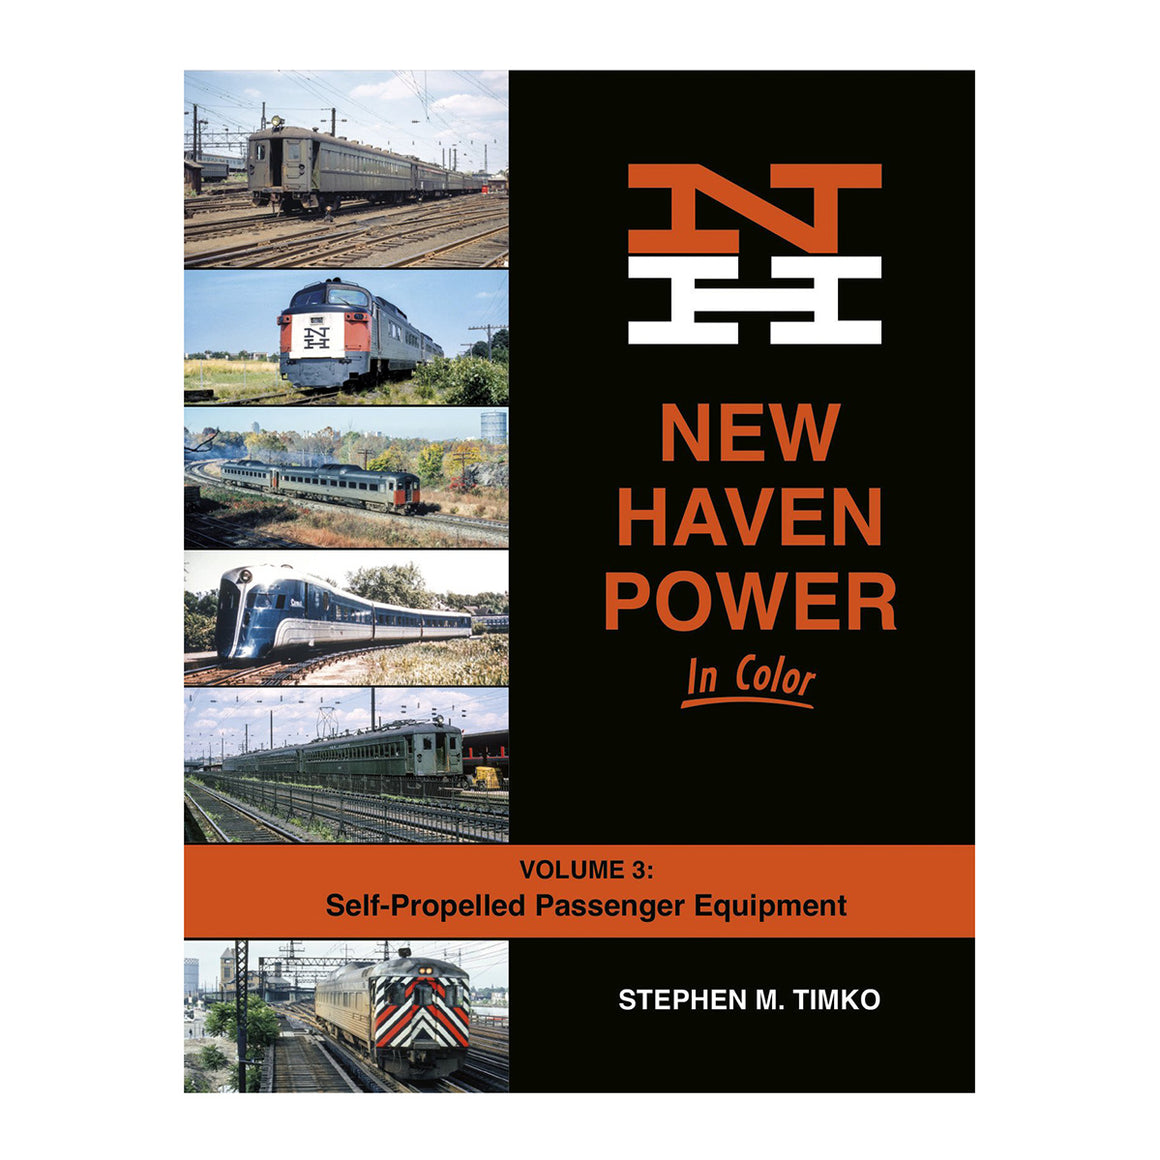 Books: New Haven Power In Color Volume 3: Self-Propelled Passenger Equipment